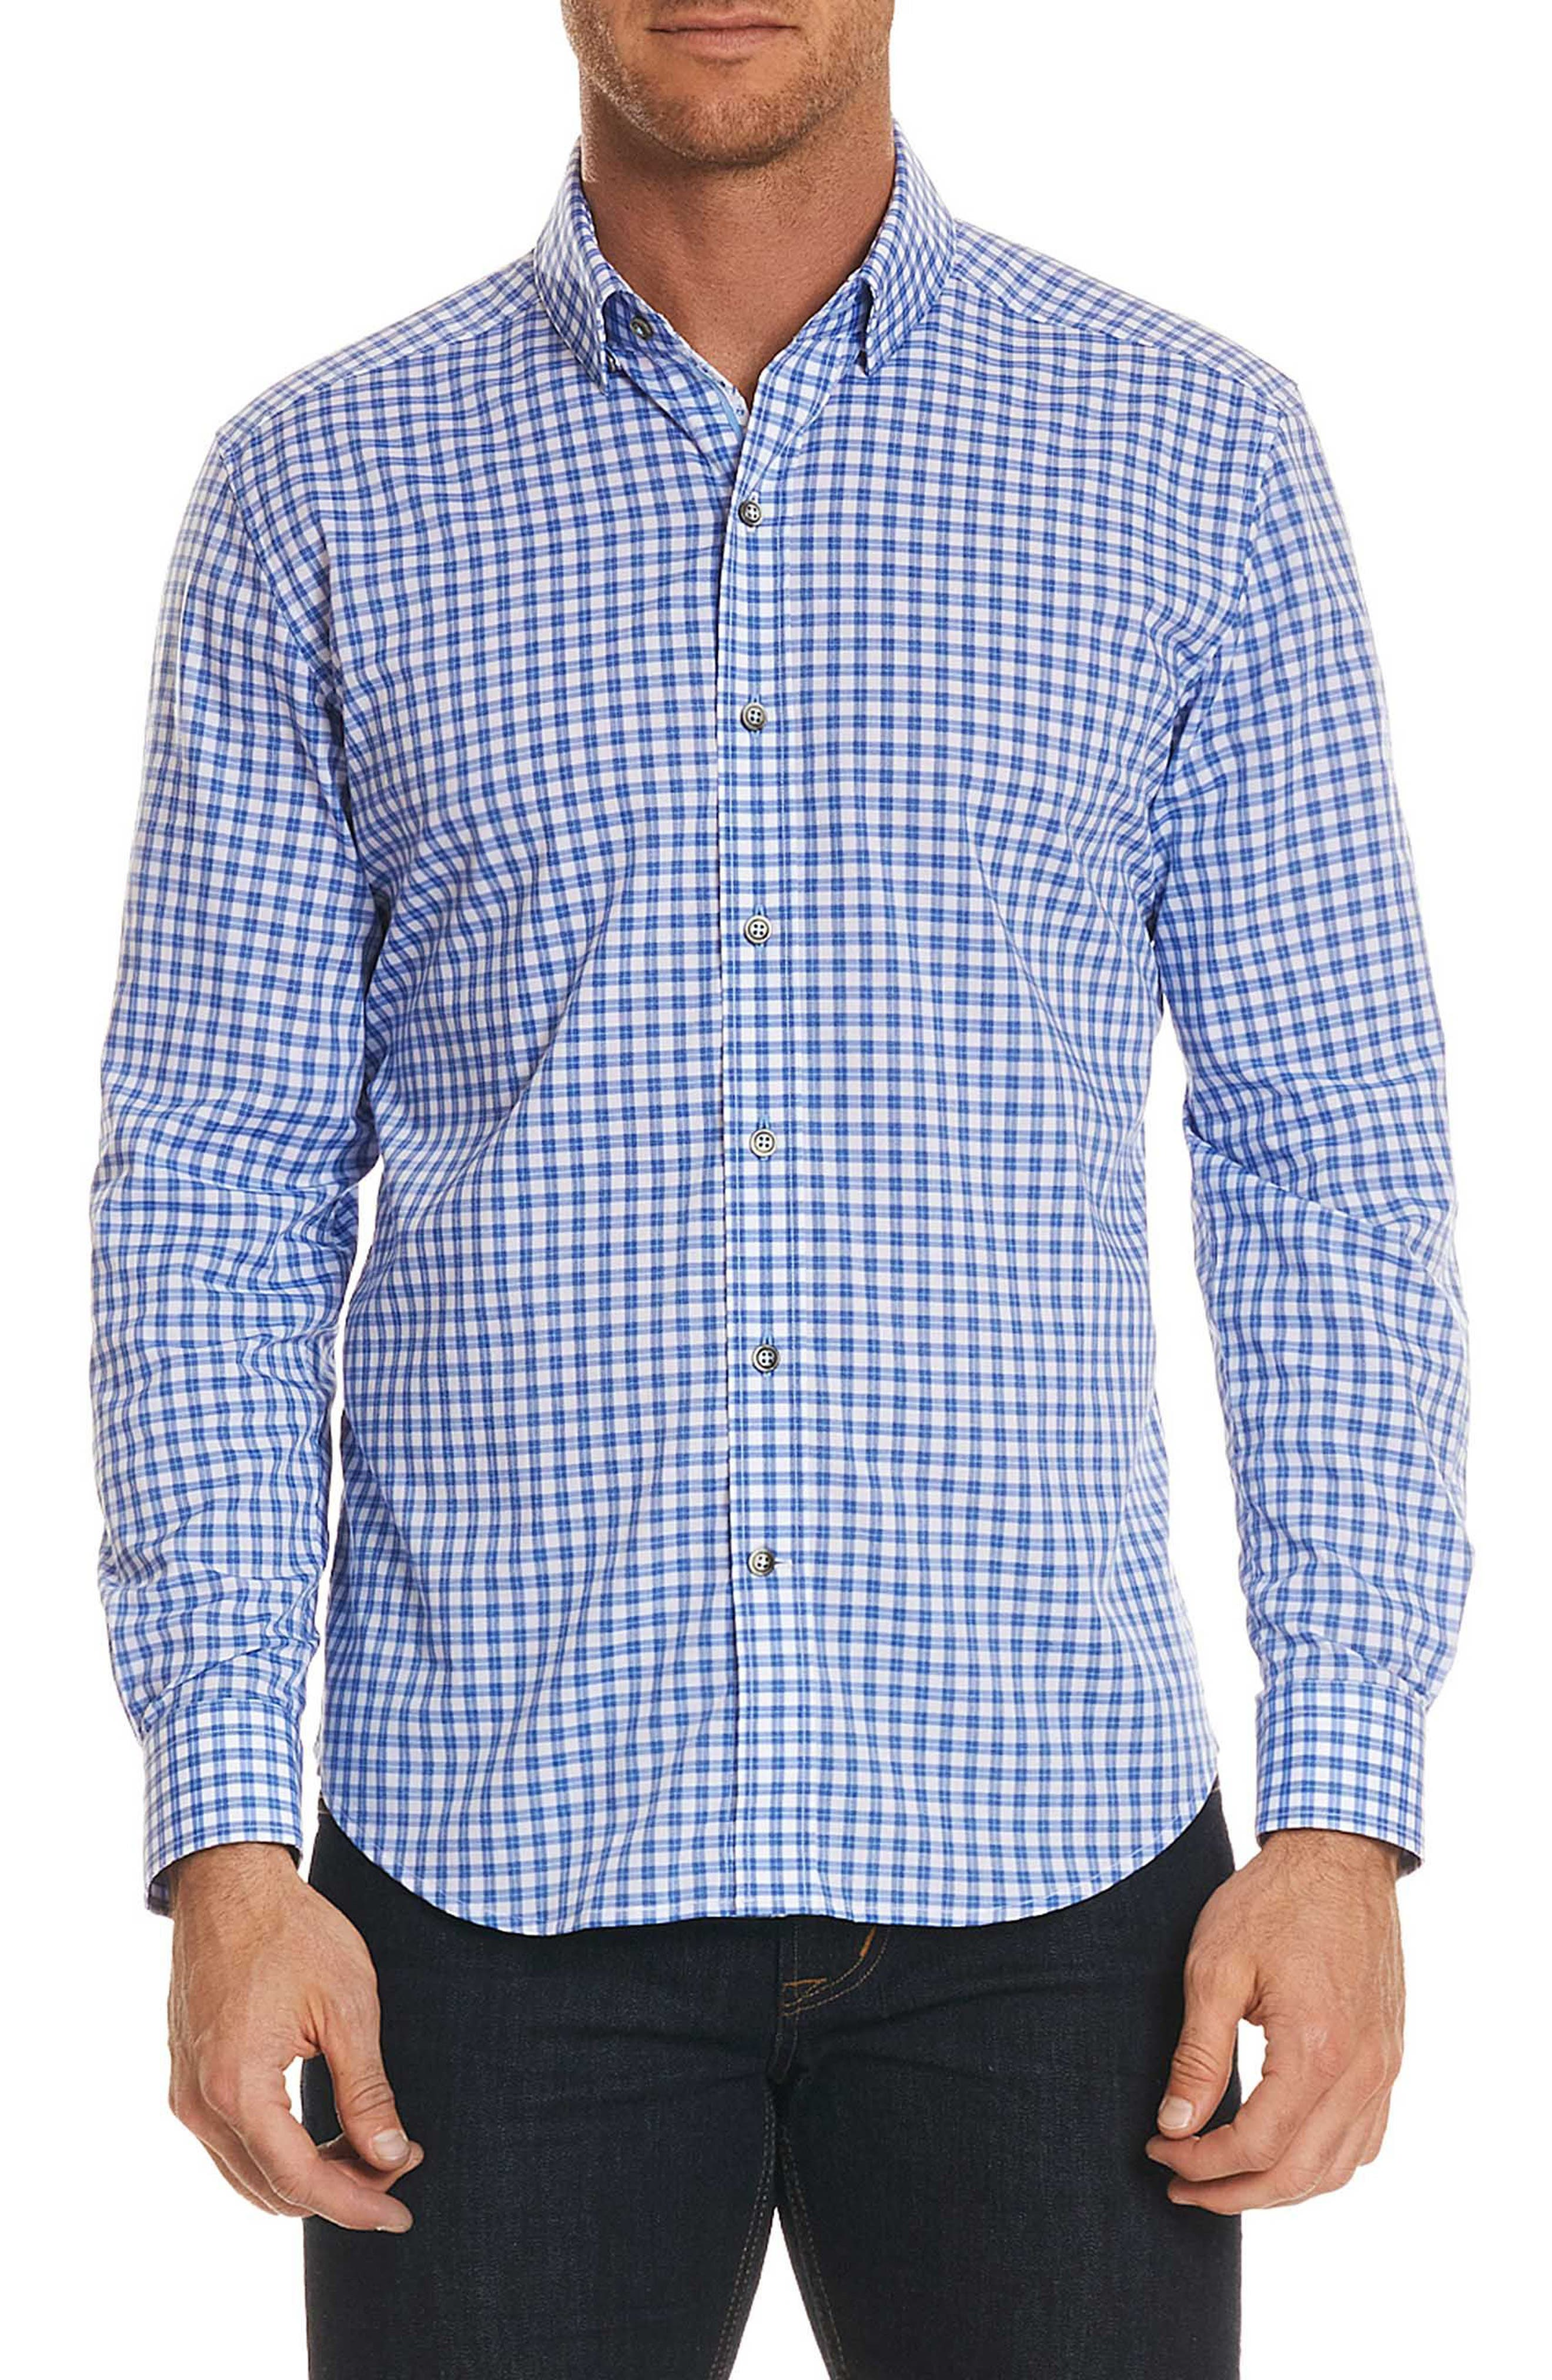 Rye Tailored Fit Check Sport Shirt,                         Main,                         color, Blue